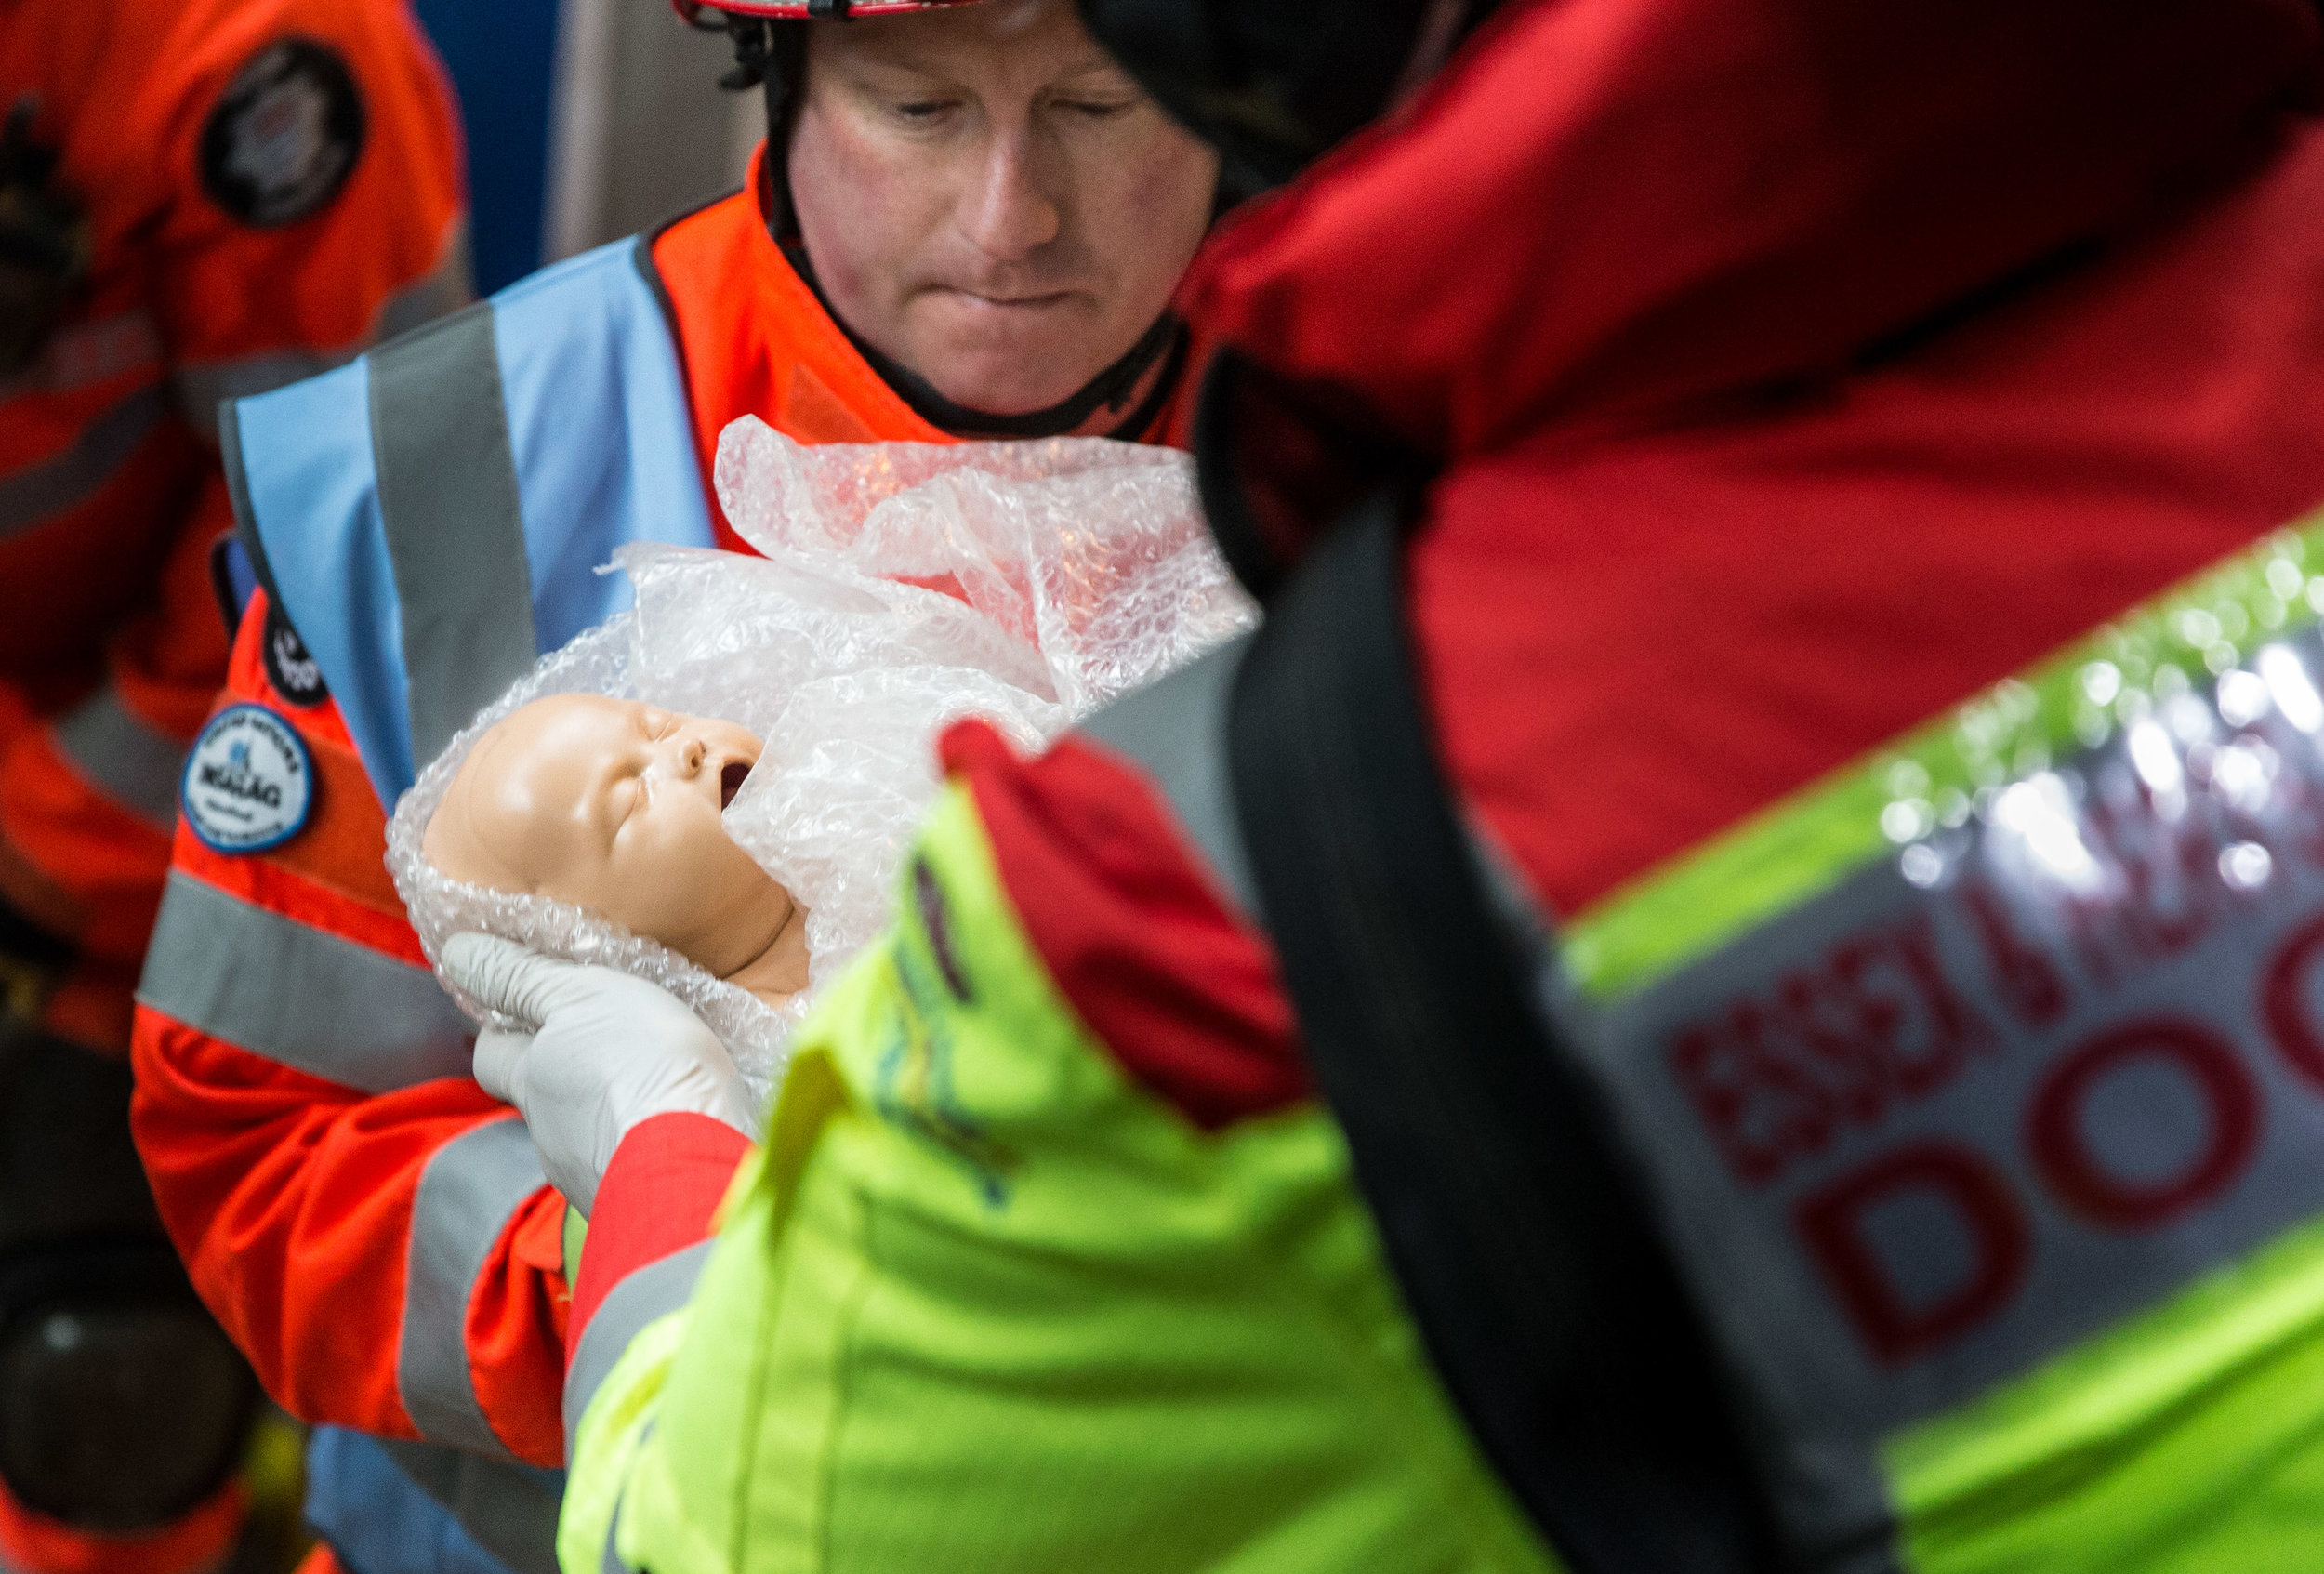 Emergency service workers handle a baby doll